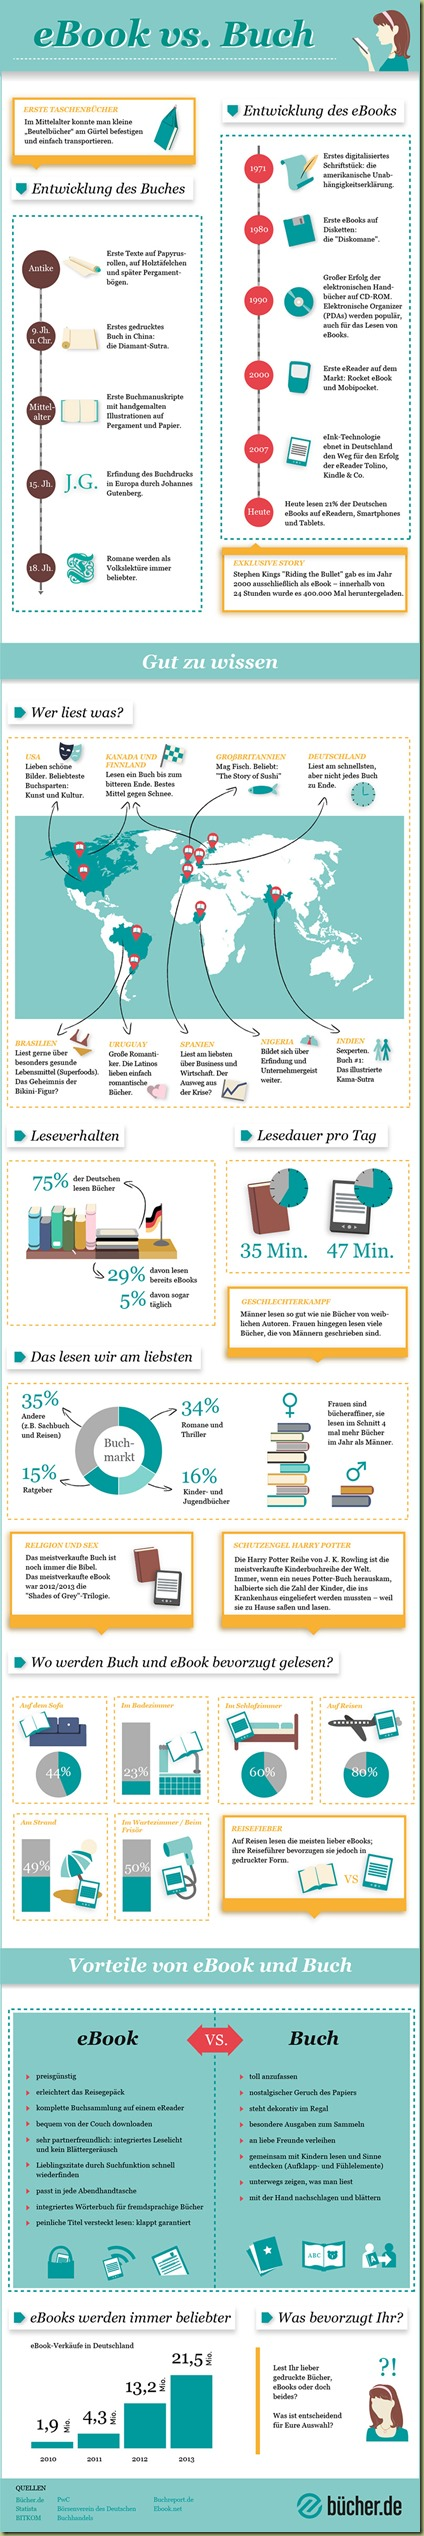 infografik-buercher-de-final-2